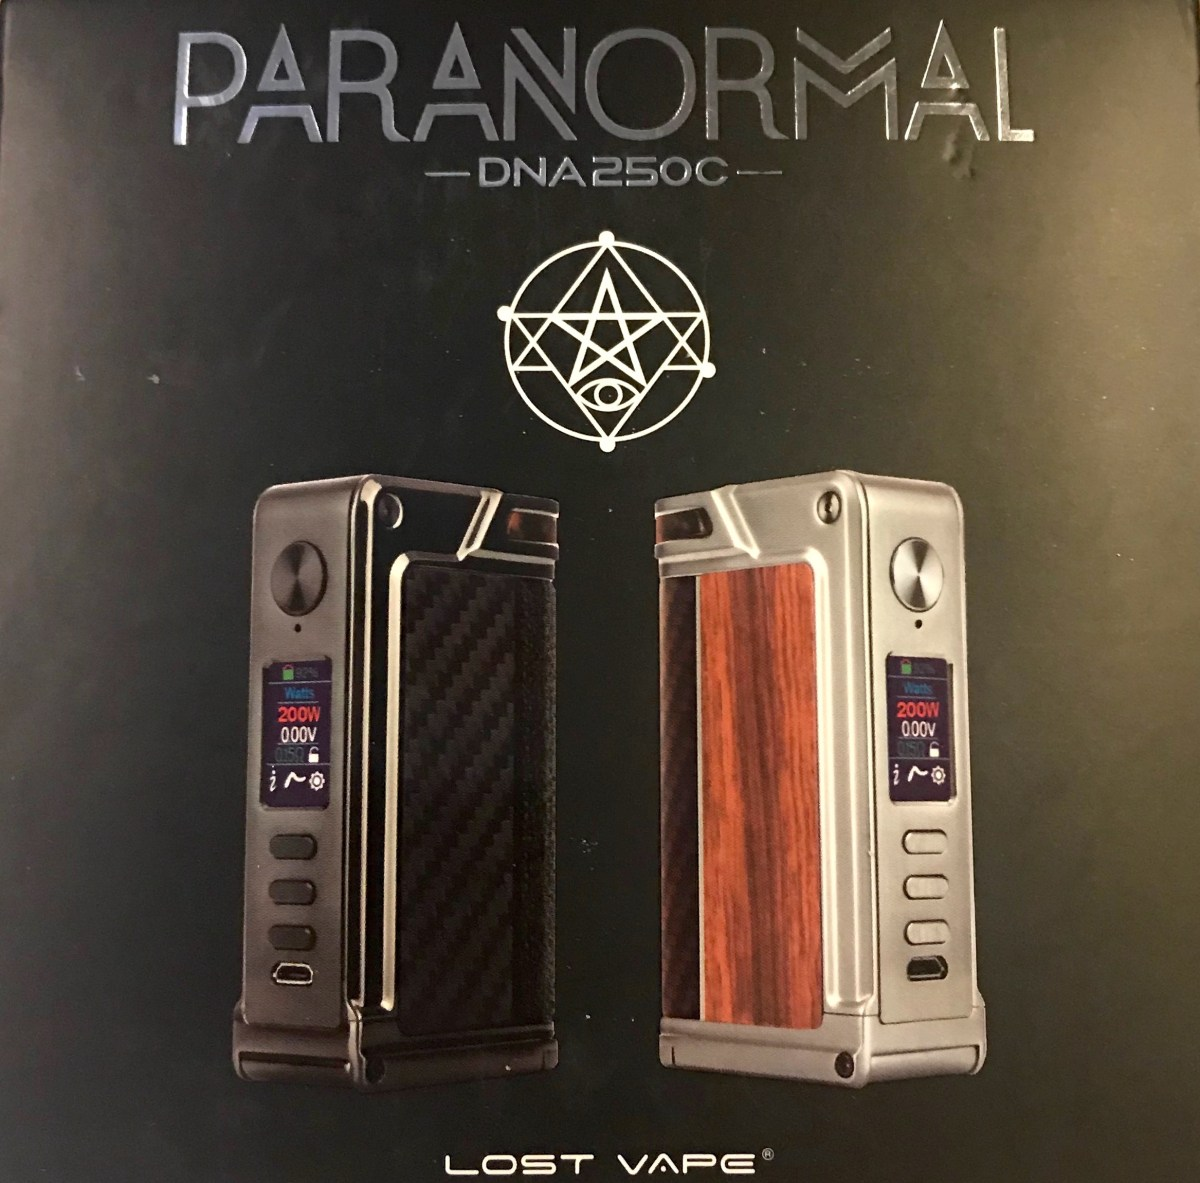 Lost Vape Paranormal DNA250 [A Spooky Review]